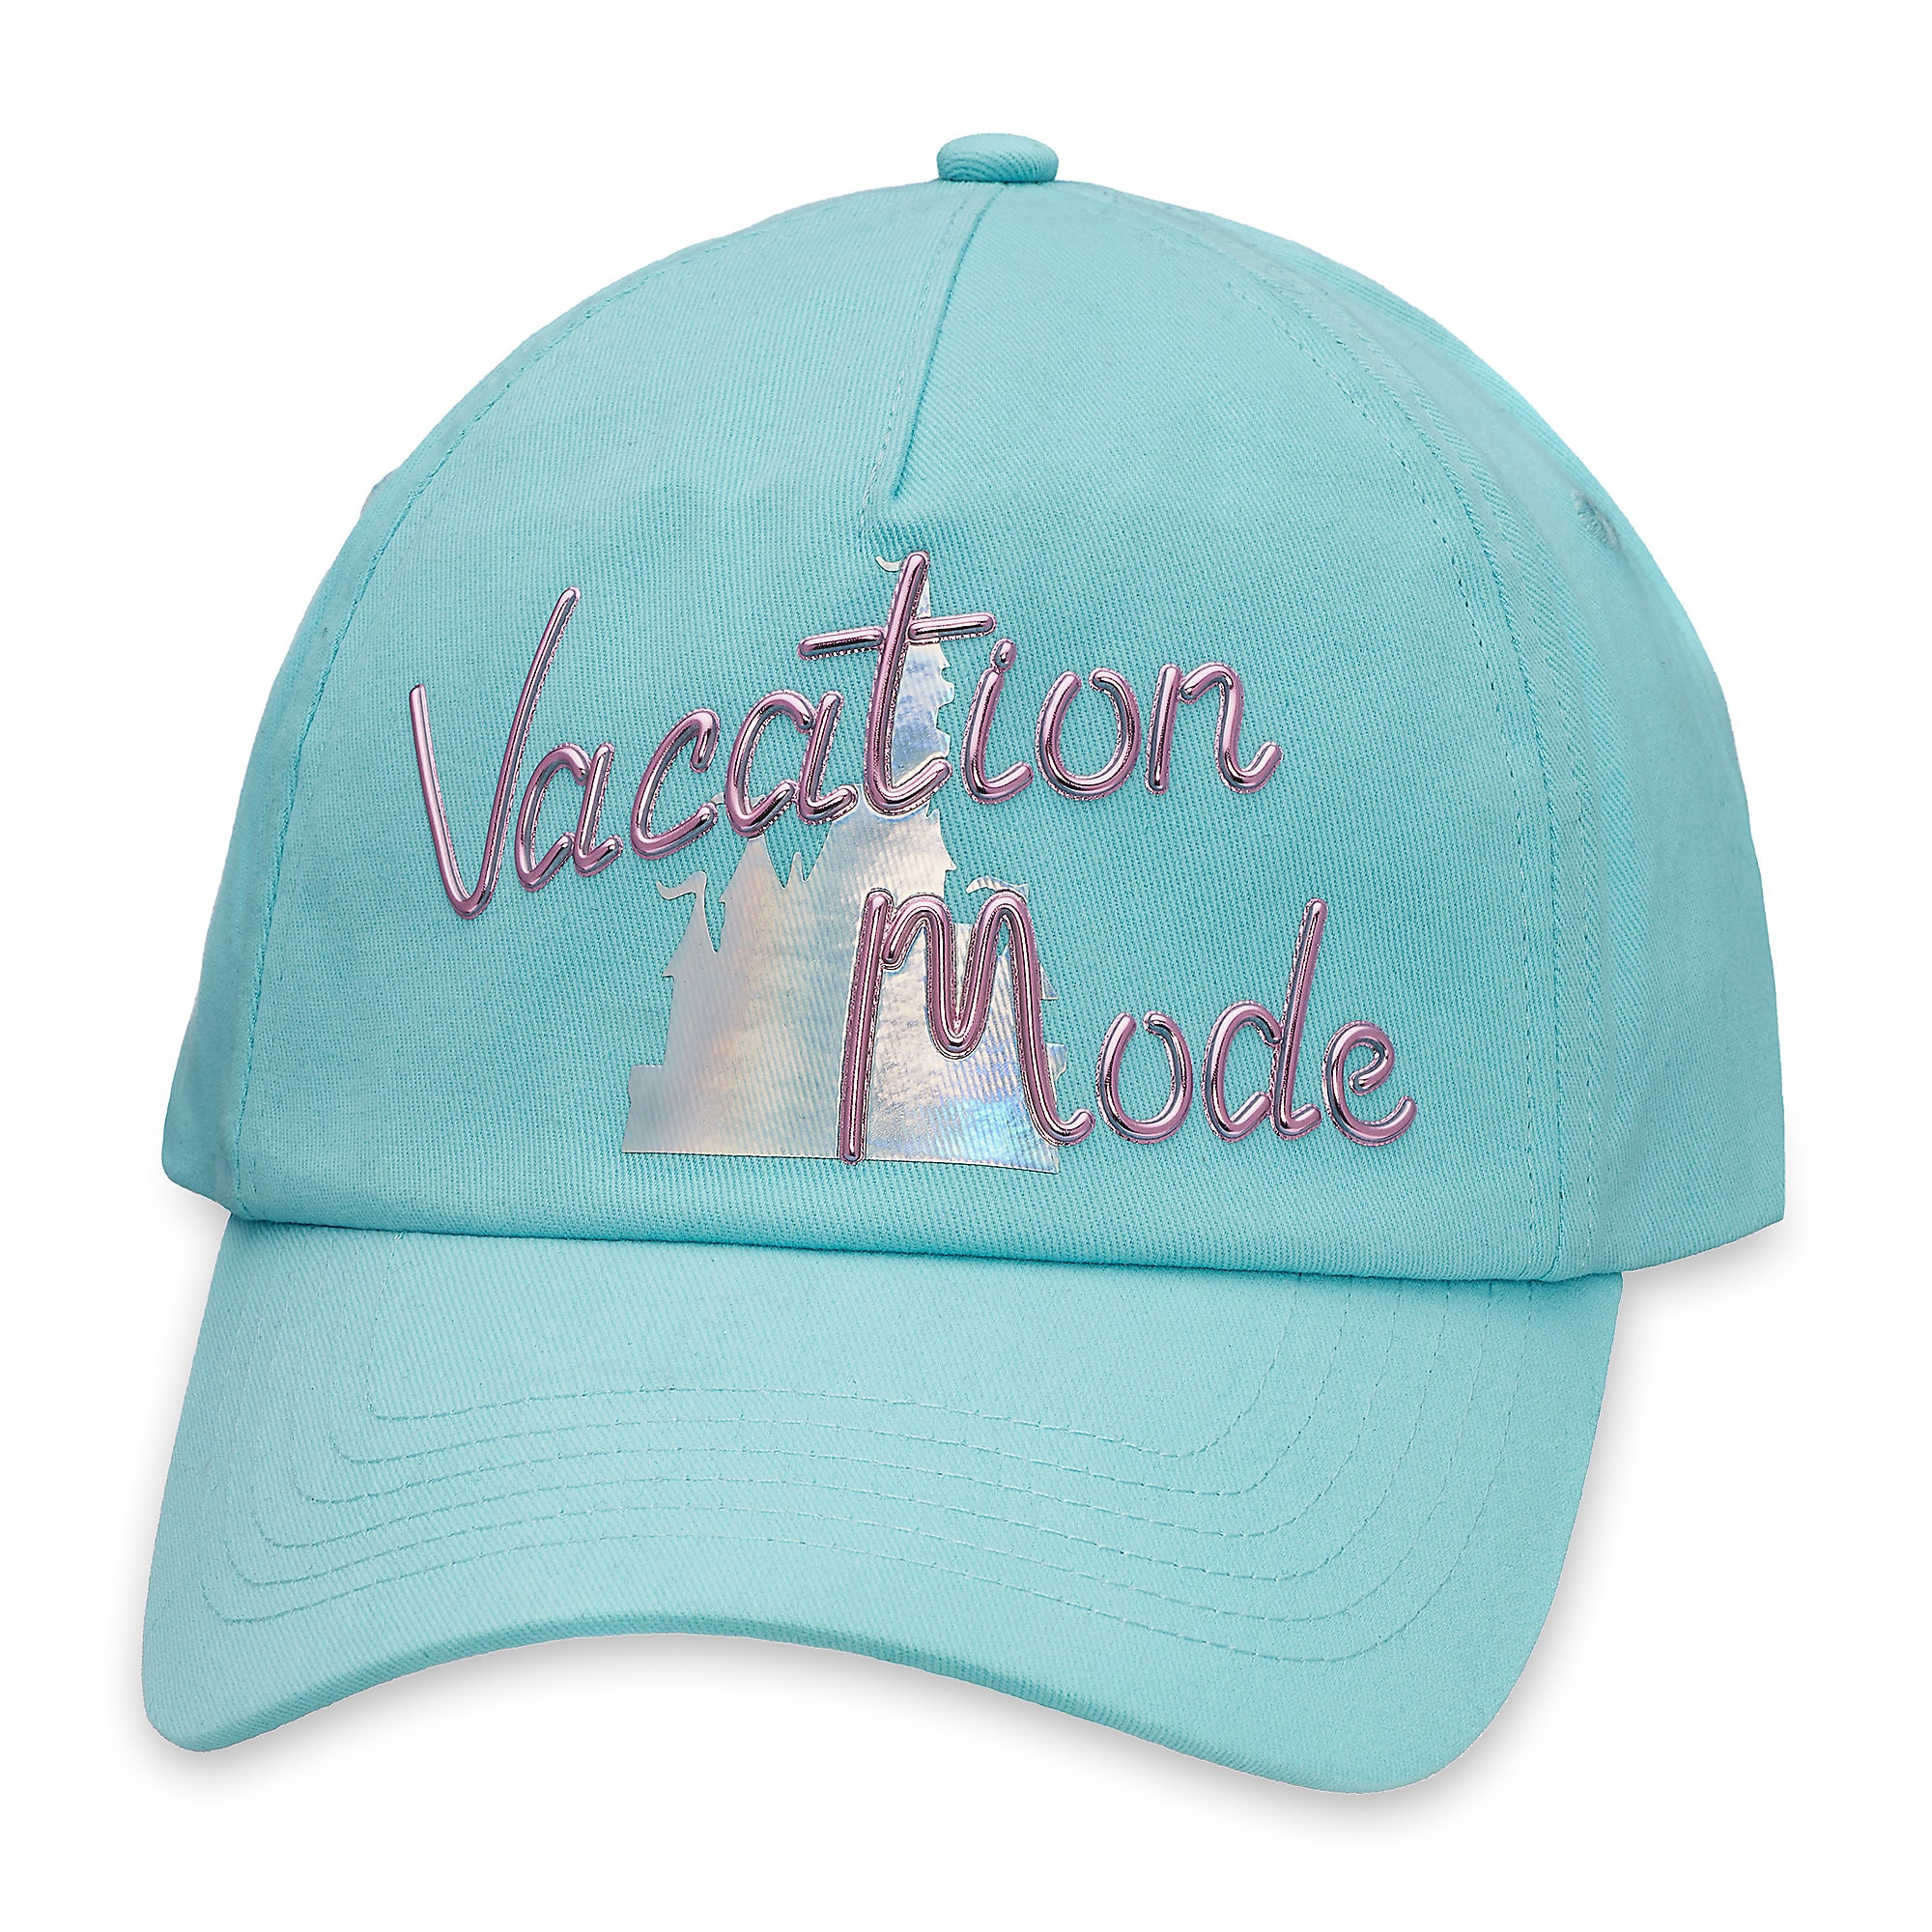 quality design 57f0d ee44f Disney Parks   Vacation Mode   Baseball Cap for Adults is now out for  purchase